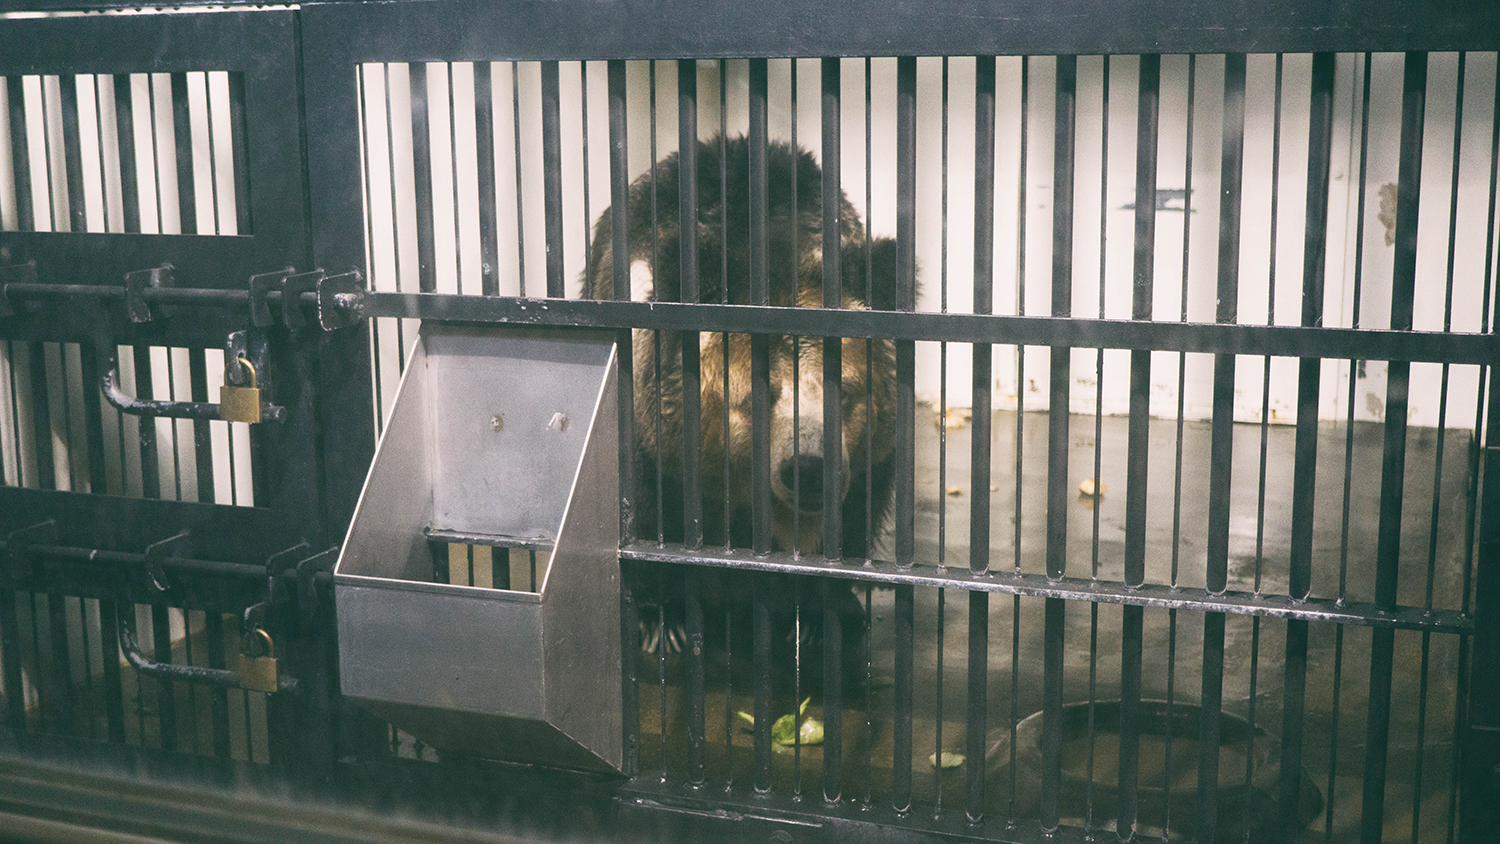 Bear in a cage.